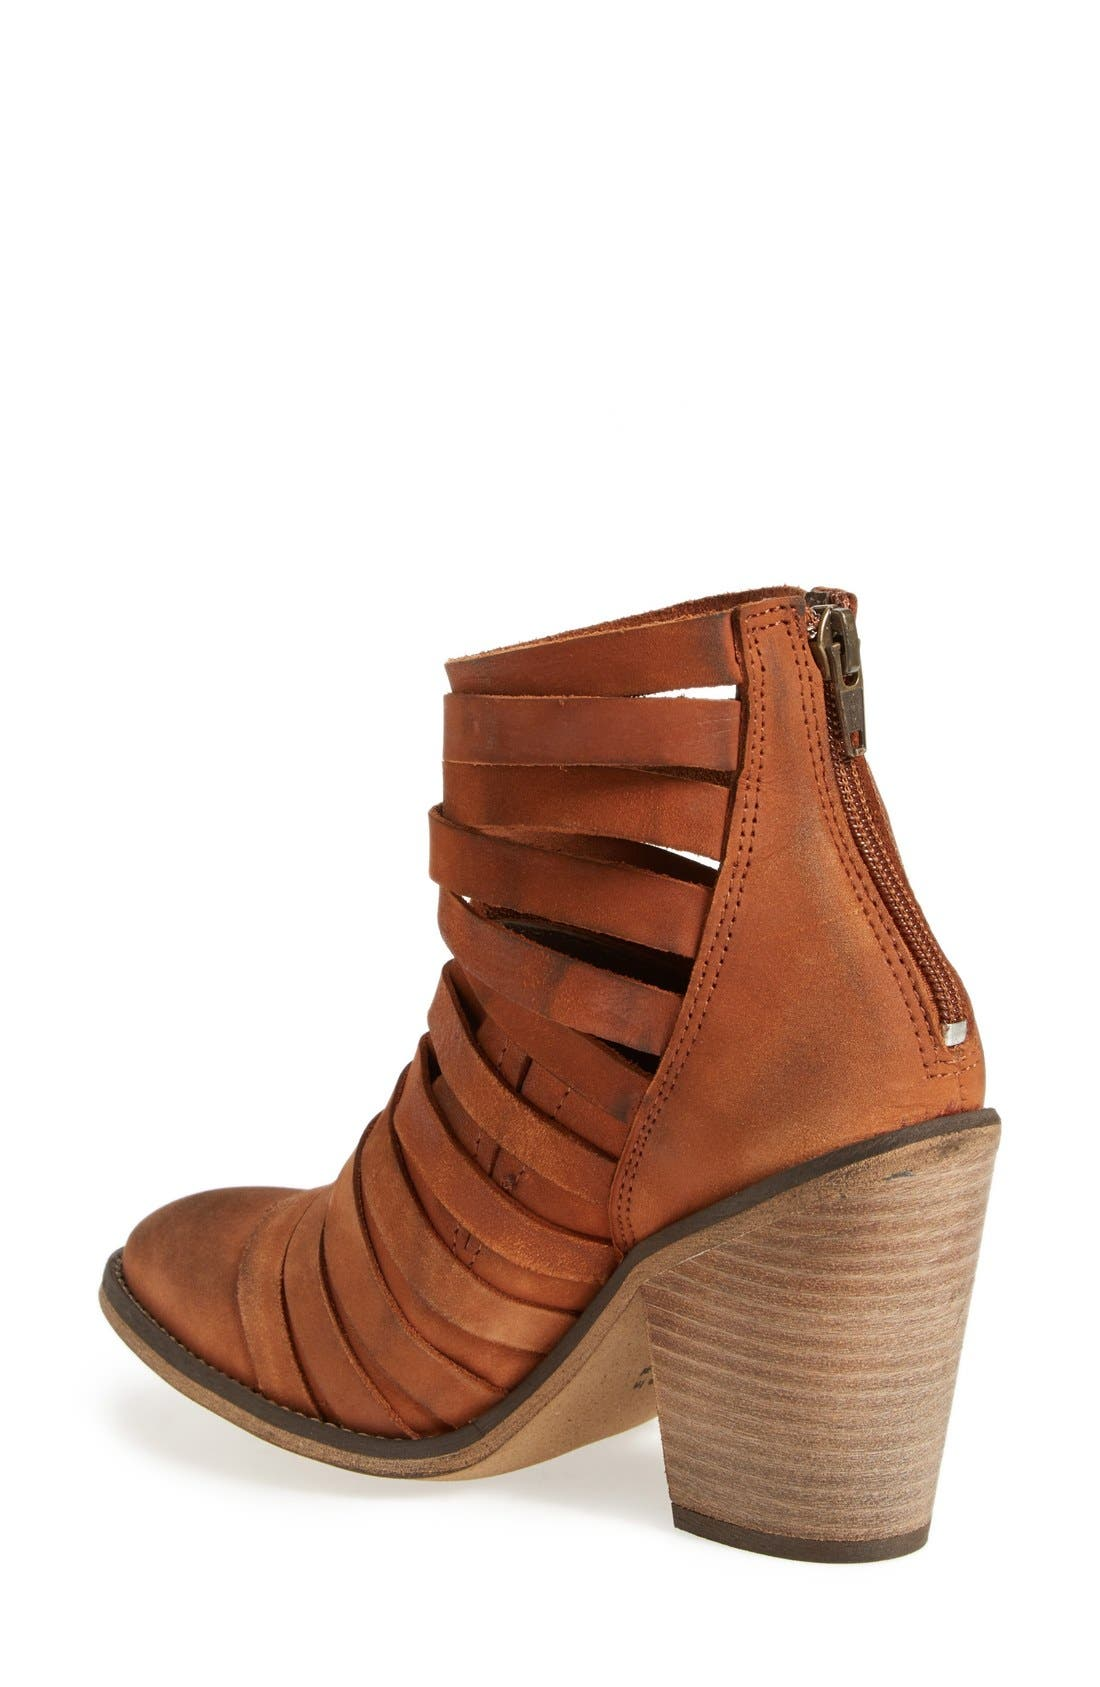 'Hybrid' Strappy Leather Bootie,                             Alternate thumbnail 3, color,                             209